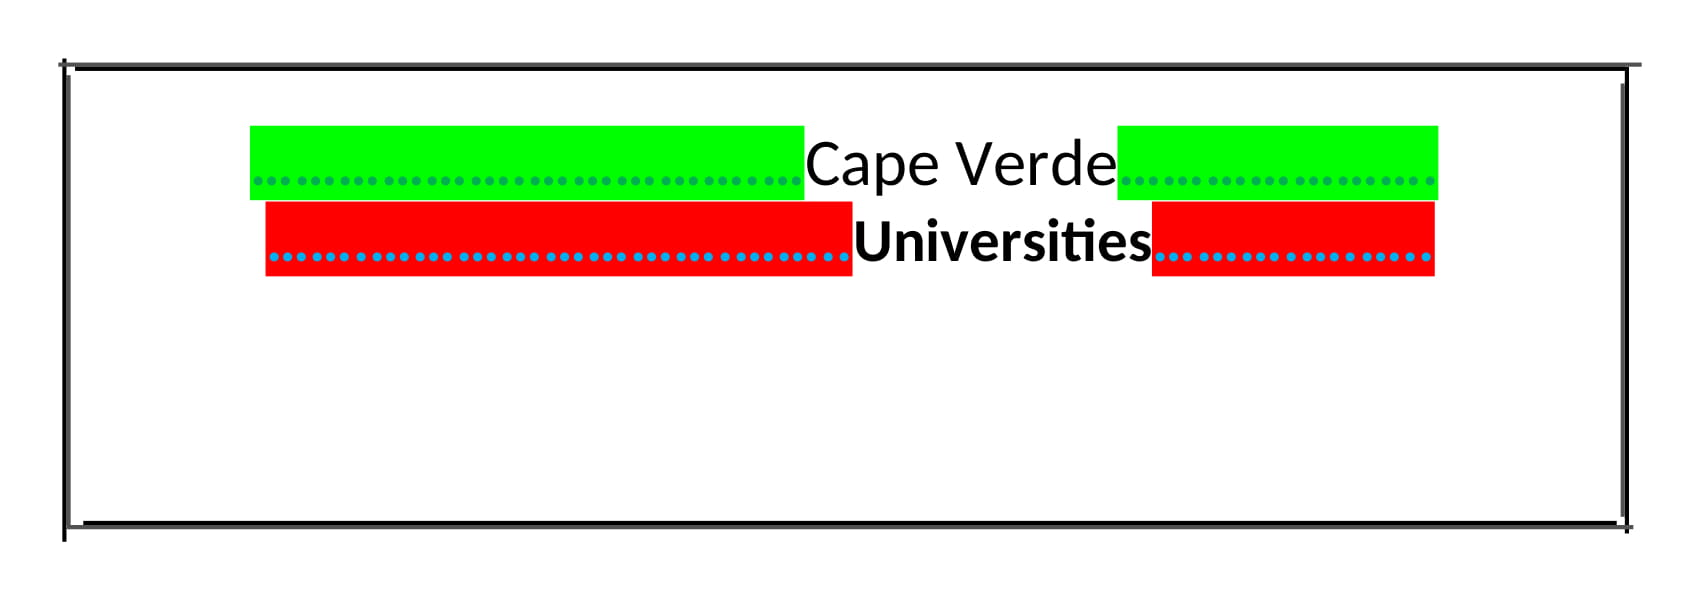 List of Universities in Cape Verde